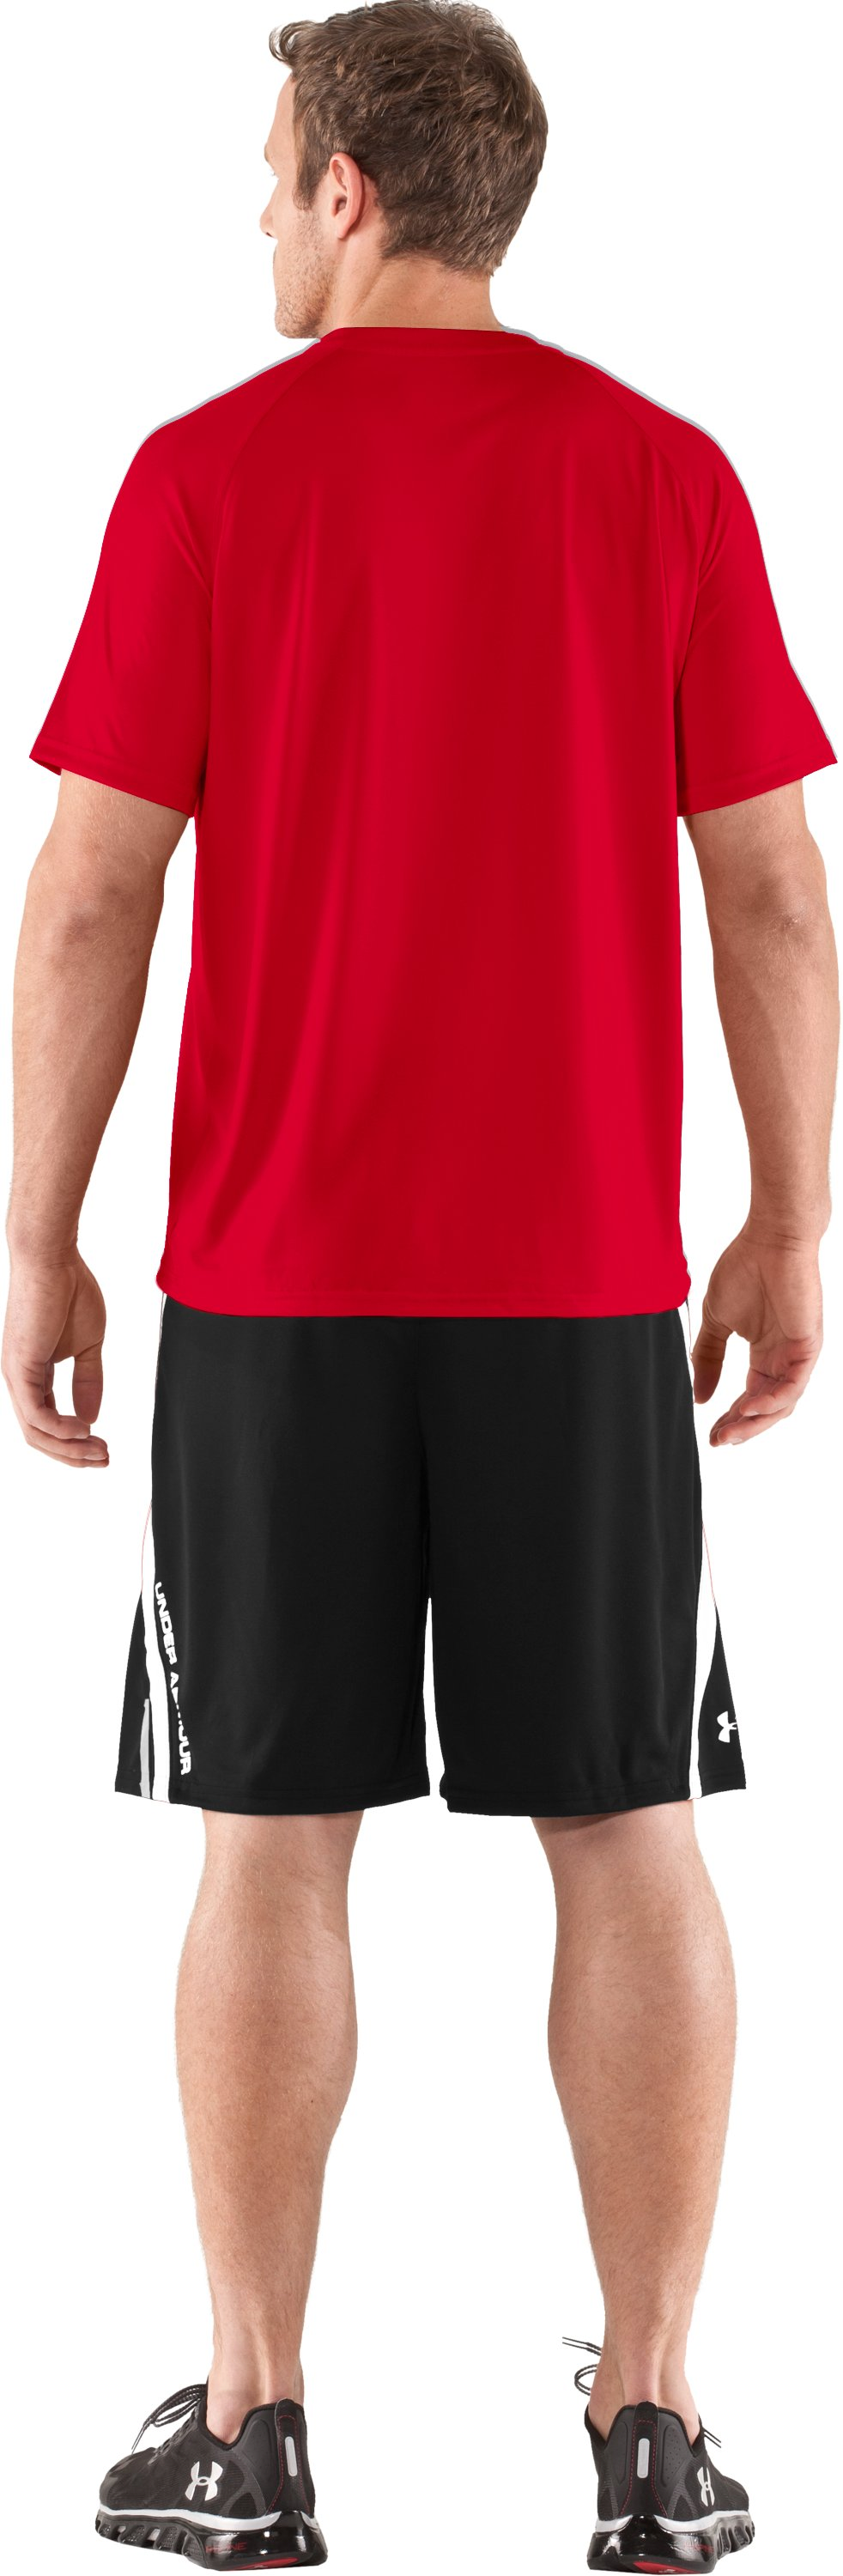 Men's Under Armour® Alter Ego Superman T-Shirt, Red, Back